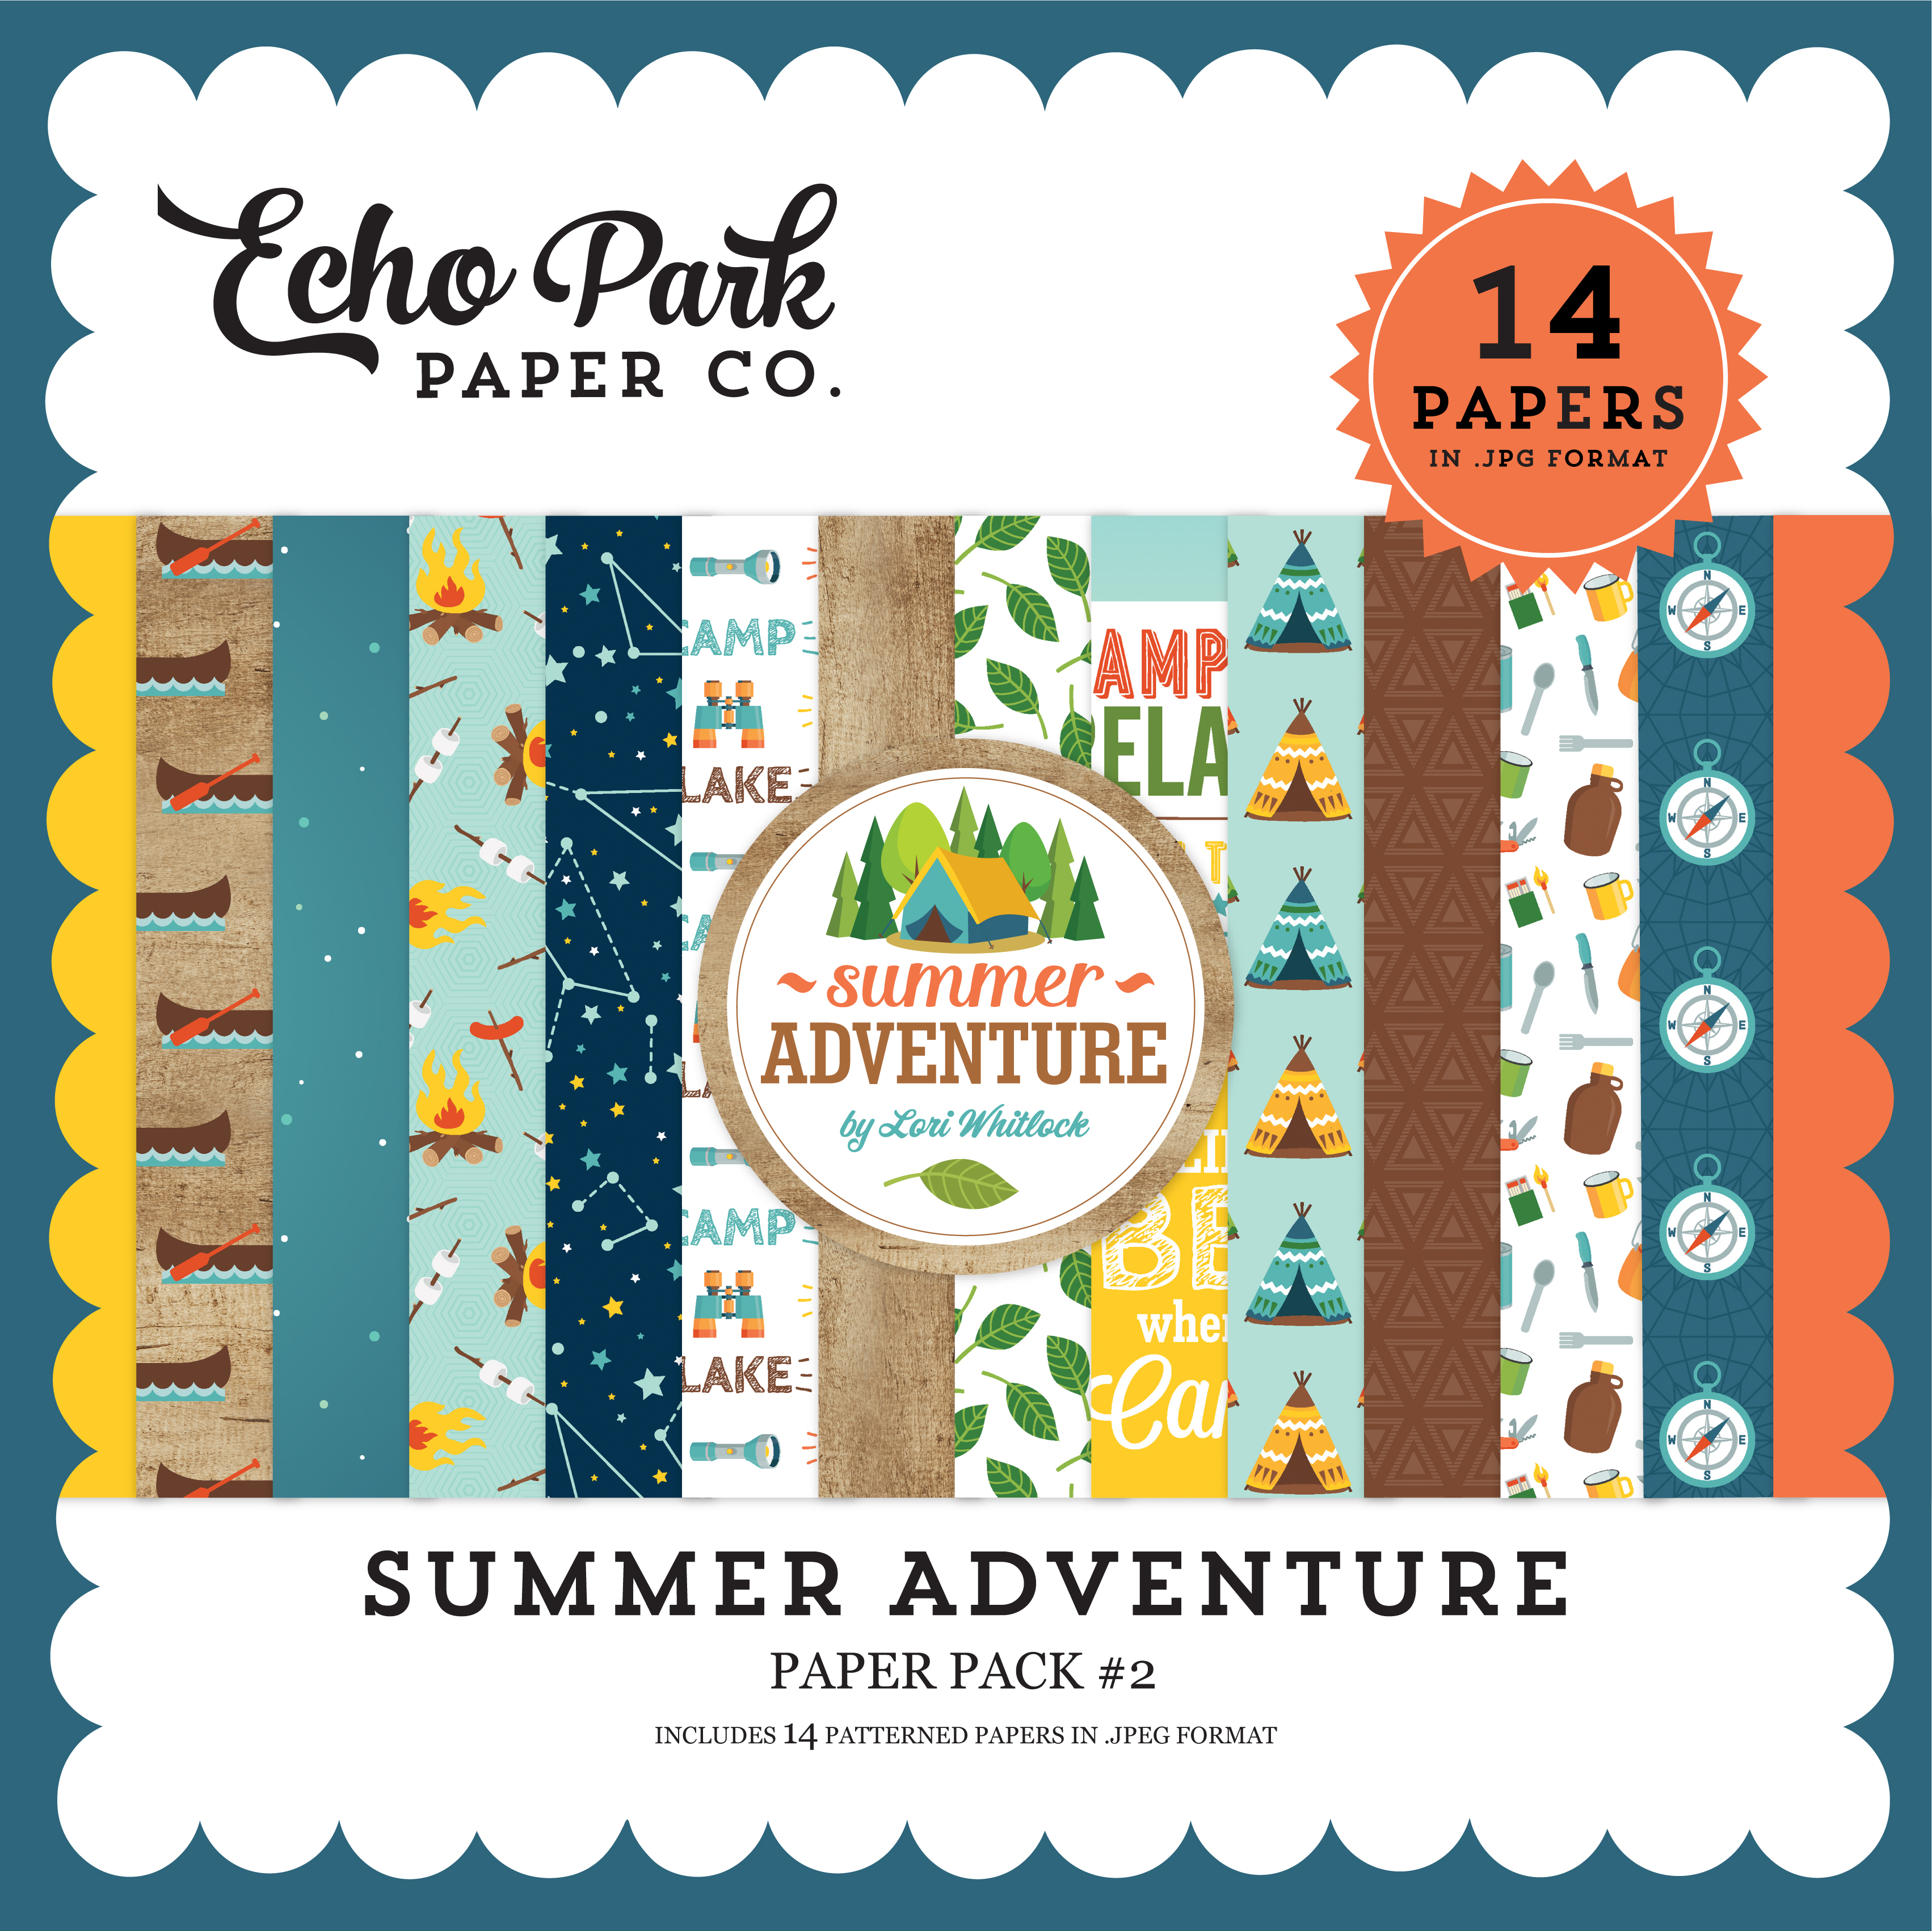 Summer Adventure Paper Pack #2